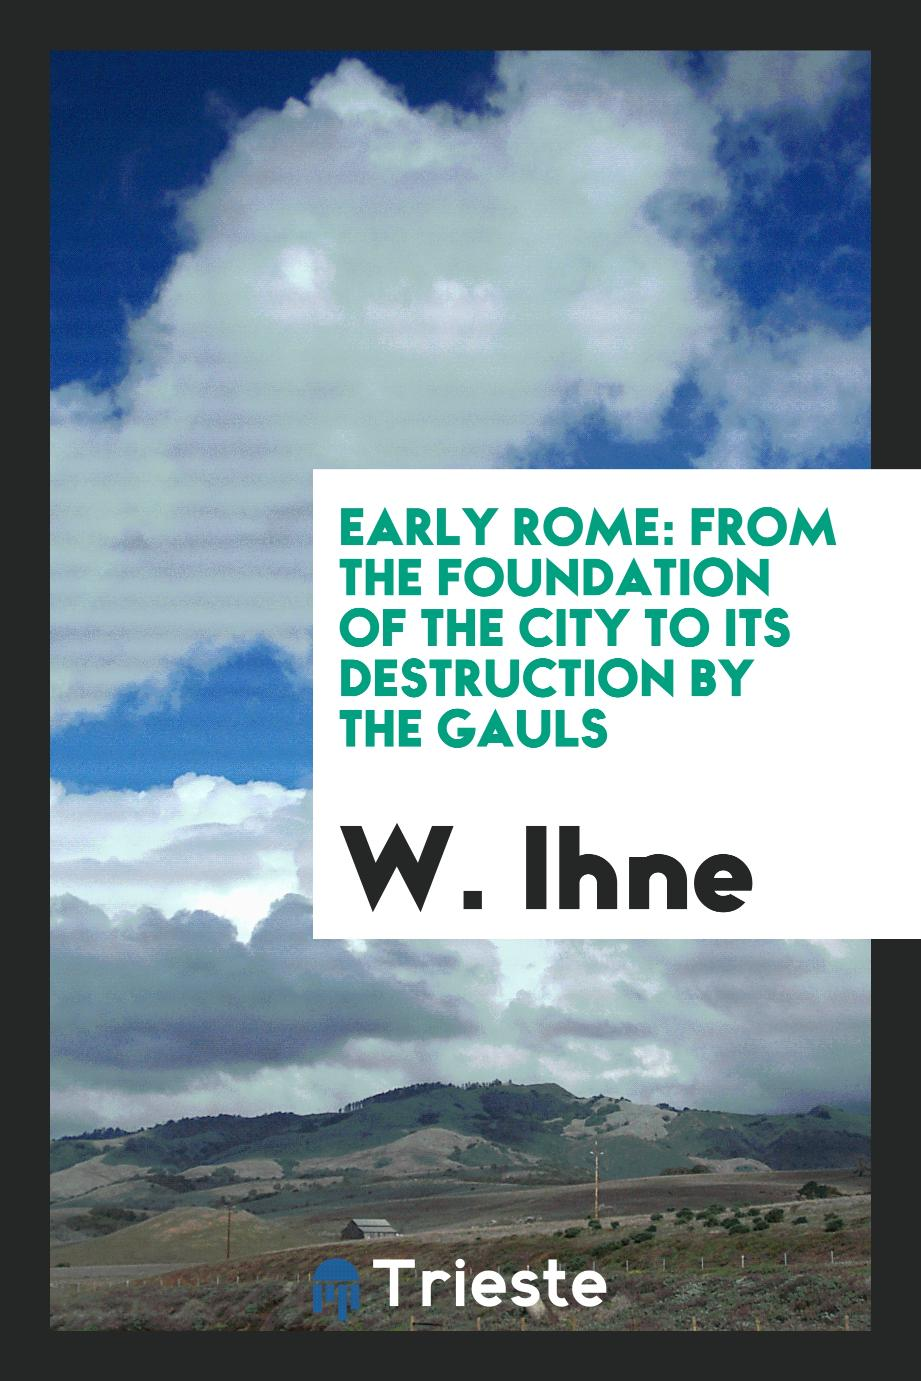 Early Rome: from the foundation of the city to its destruction by the Gauls